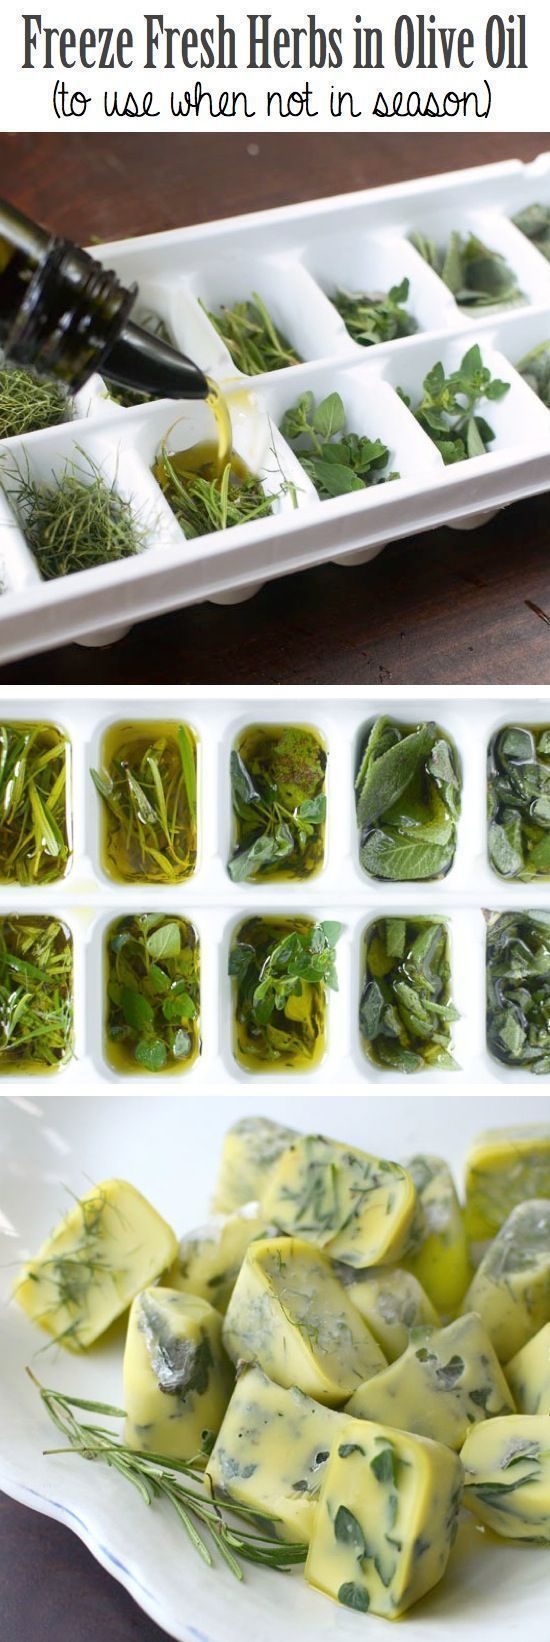 Such a great idea! Preserve herbs by freezing them in an ice cube tray with olive oil and many more brilliant kitchen hacks! @GatheredTbl #HomeCooksKnow #GatheredTable #ad